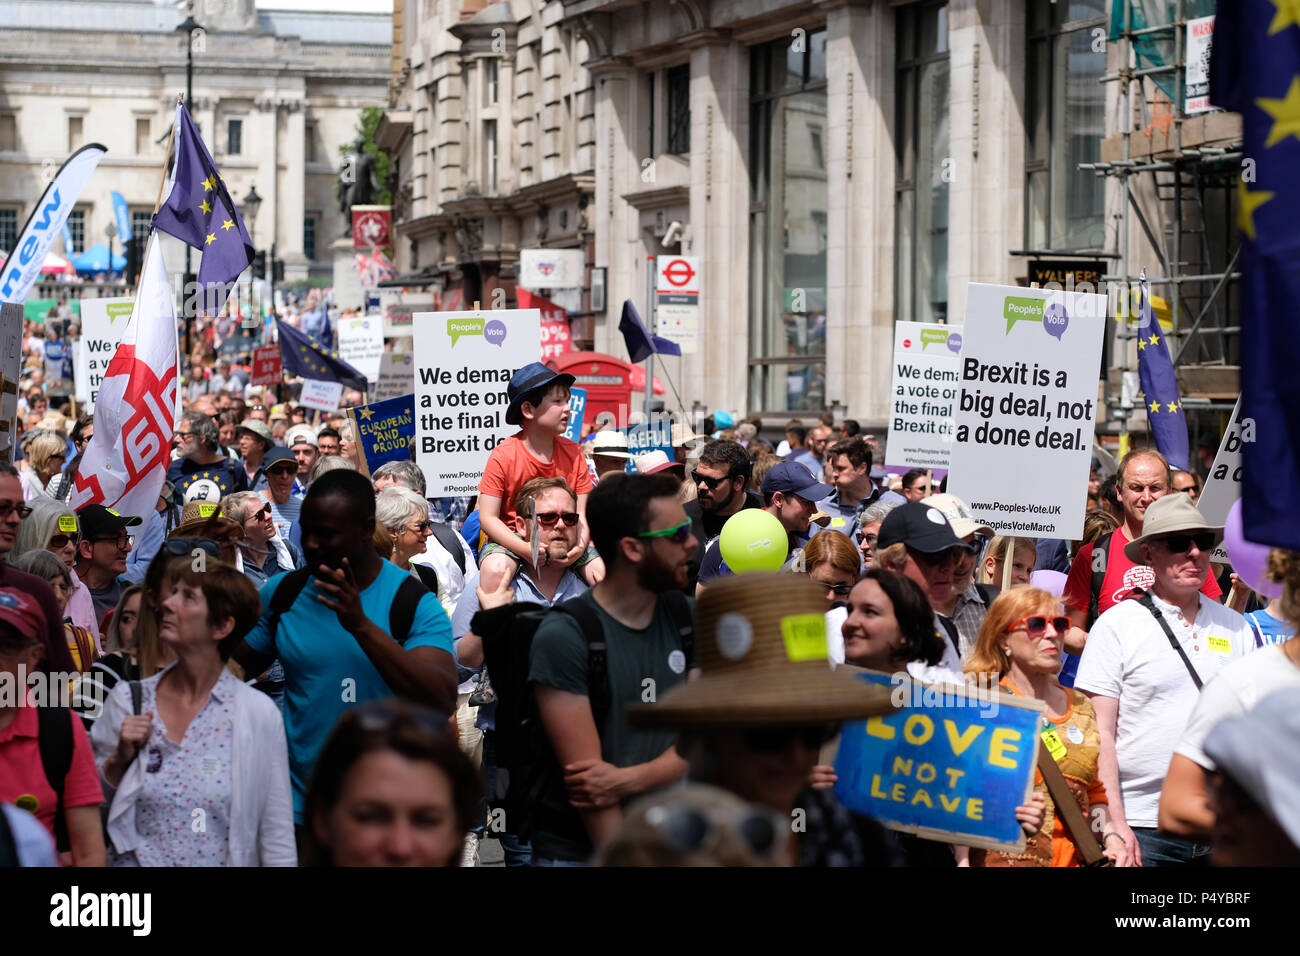 People's Vote march demonstration London, UK,  23rd June 2018. Protestors march along Whitehall en route Parliament Square to demand a second vote on the final Brexit deal - Steven May /Alamy Live News - Stock Image